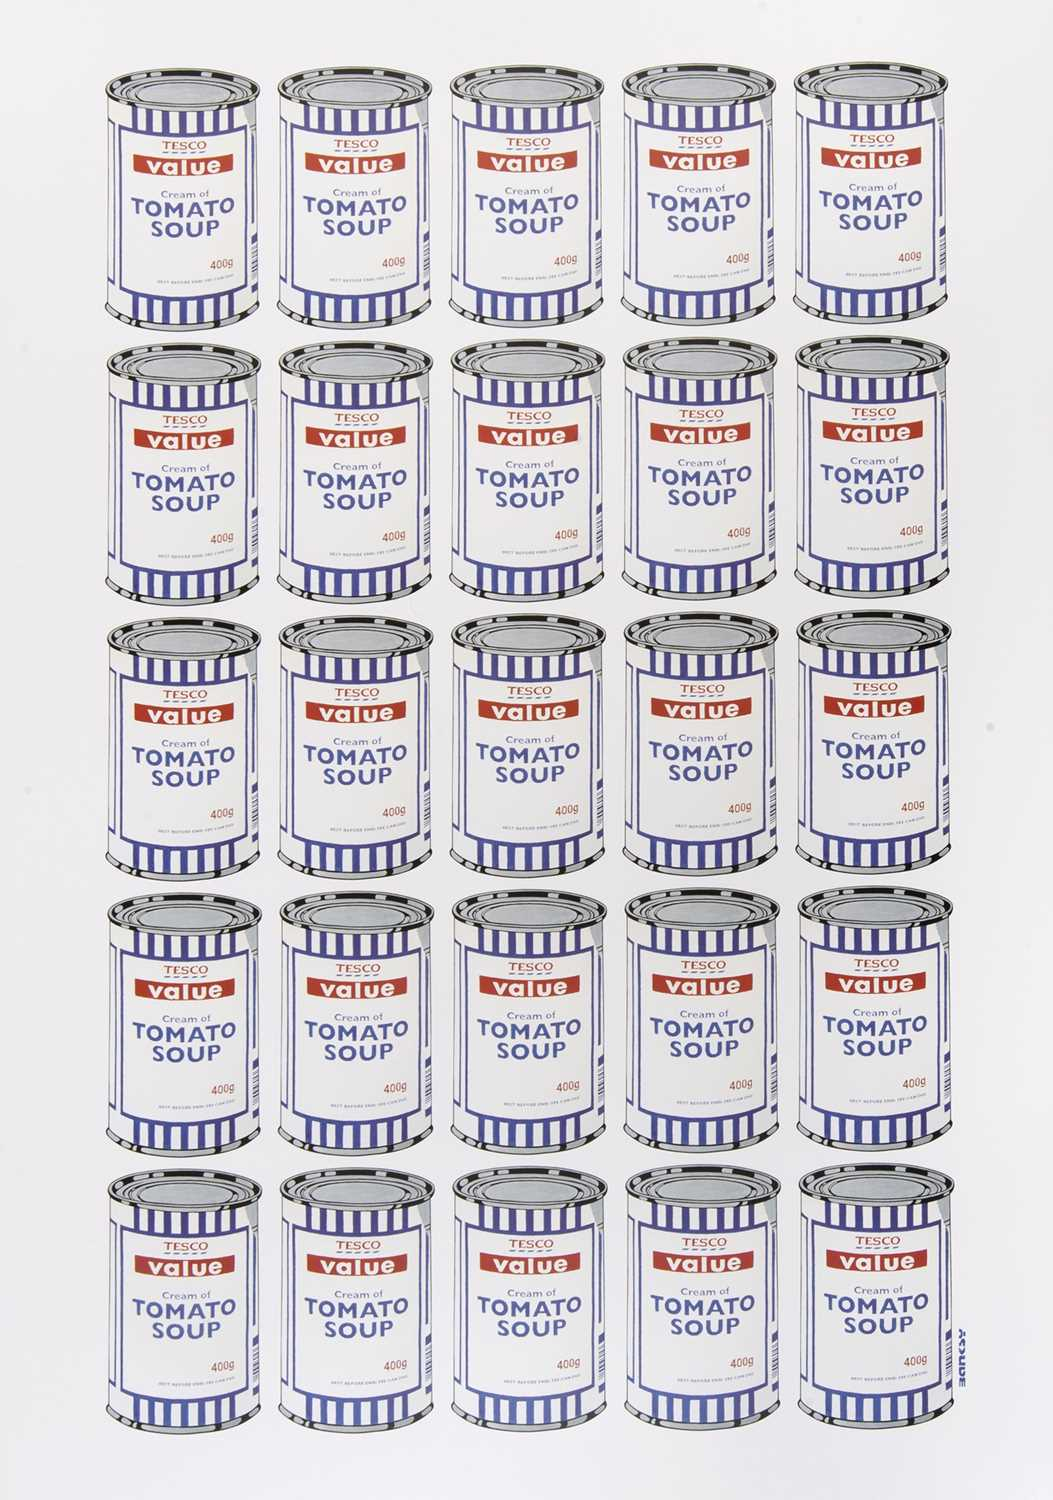 Lot 72 - Banksy (British 1974-), 'Soup Cans Poster', 2010